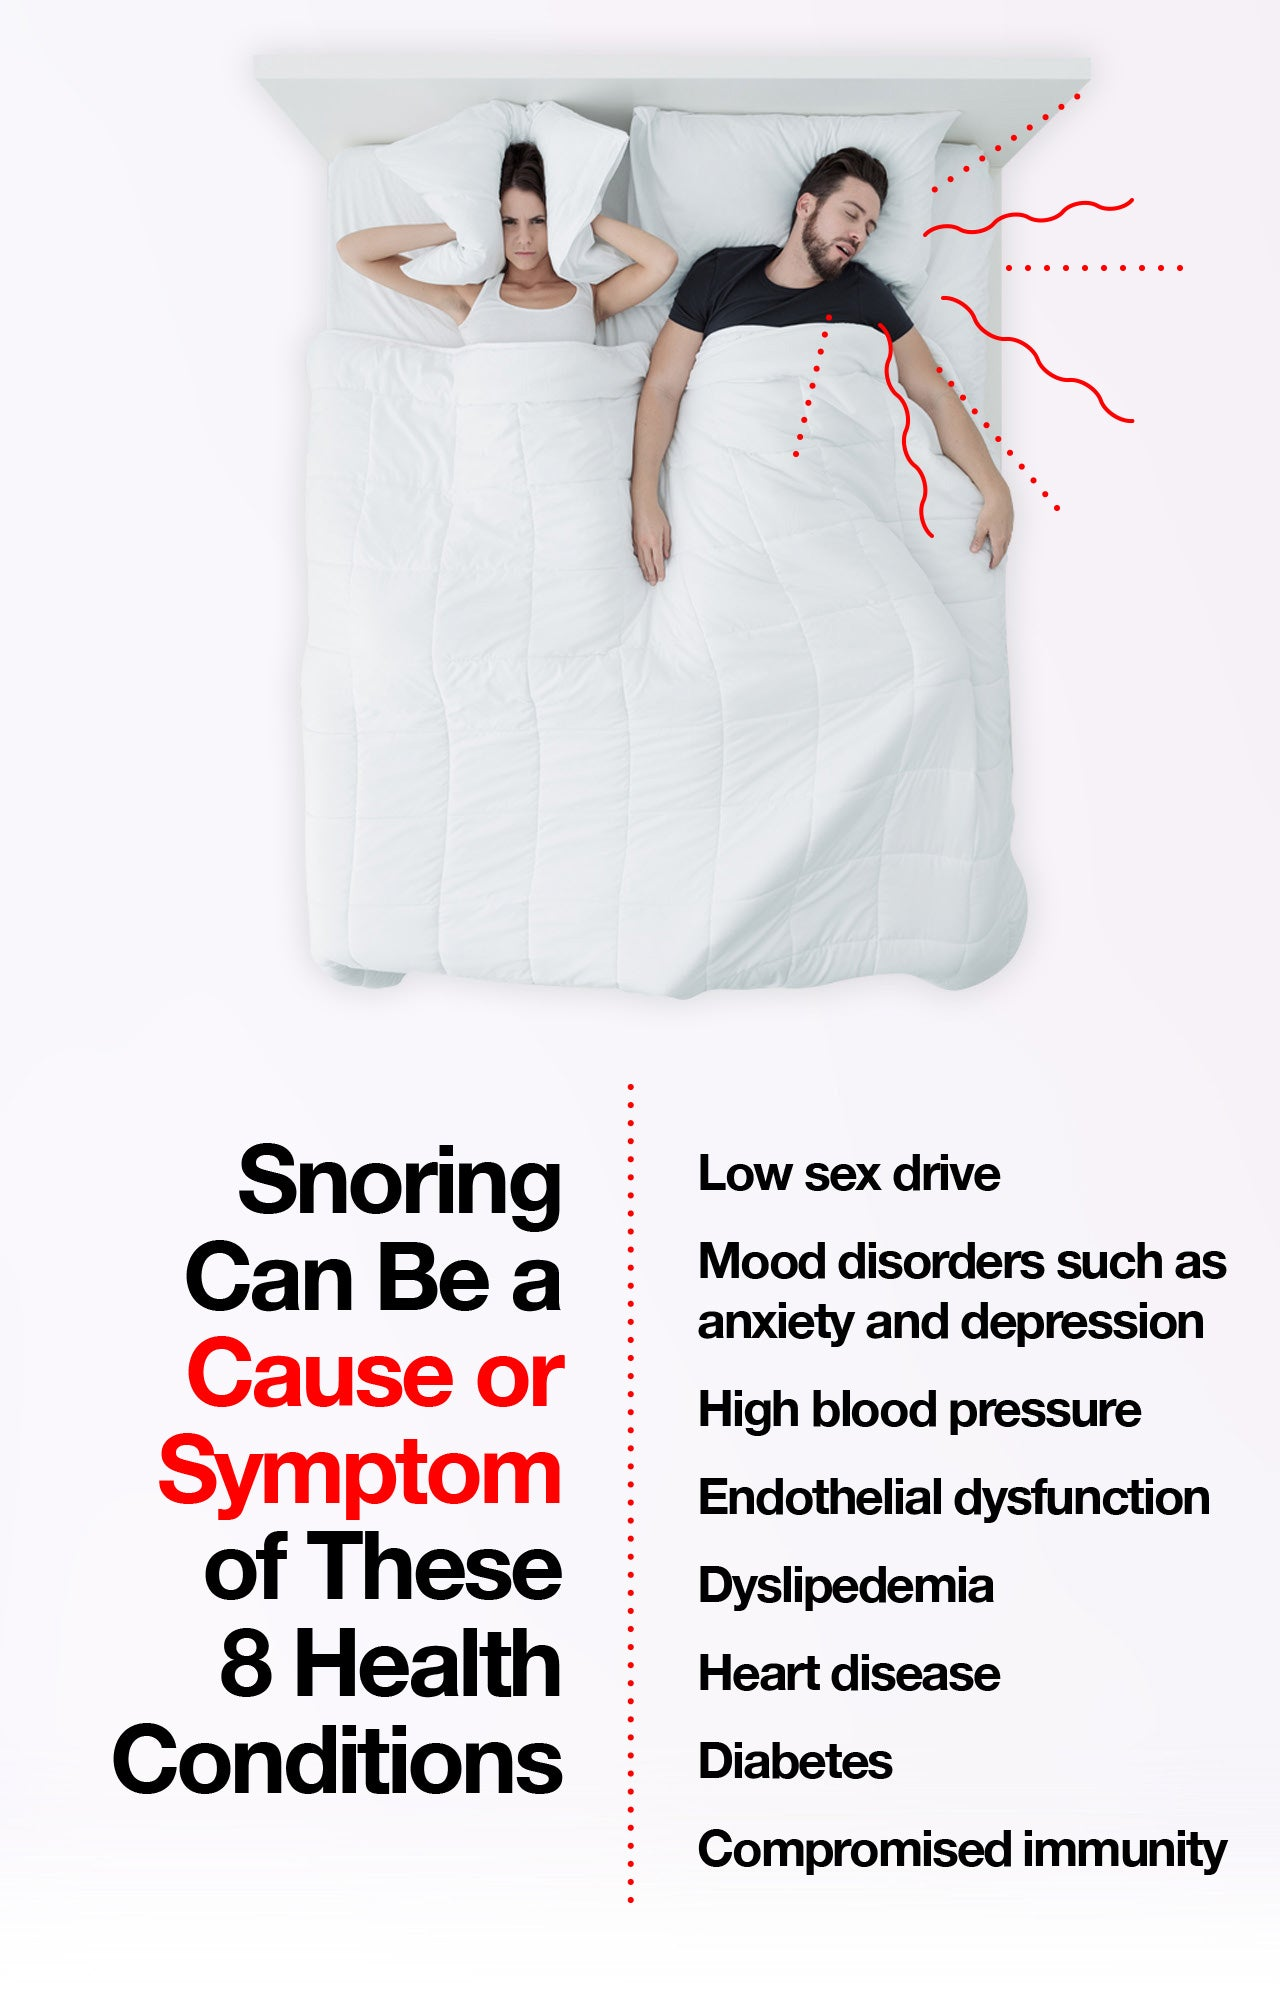 Health conditions linked to snoring